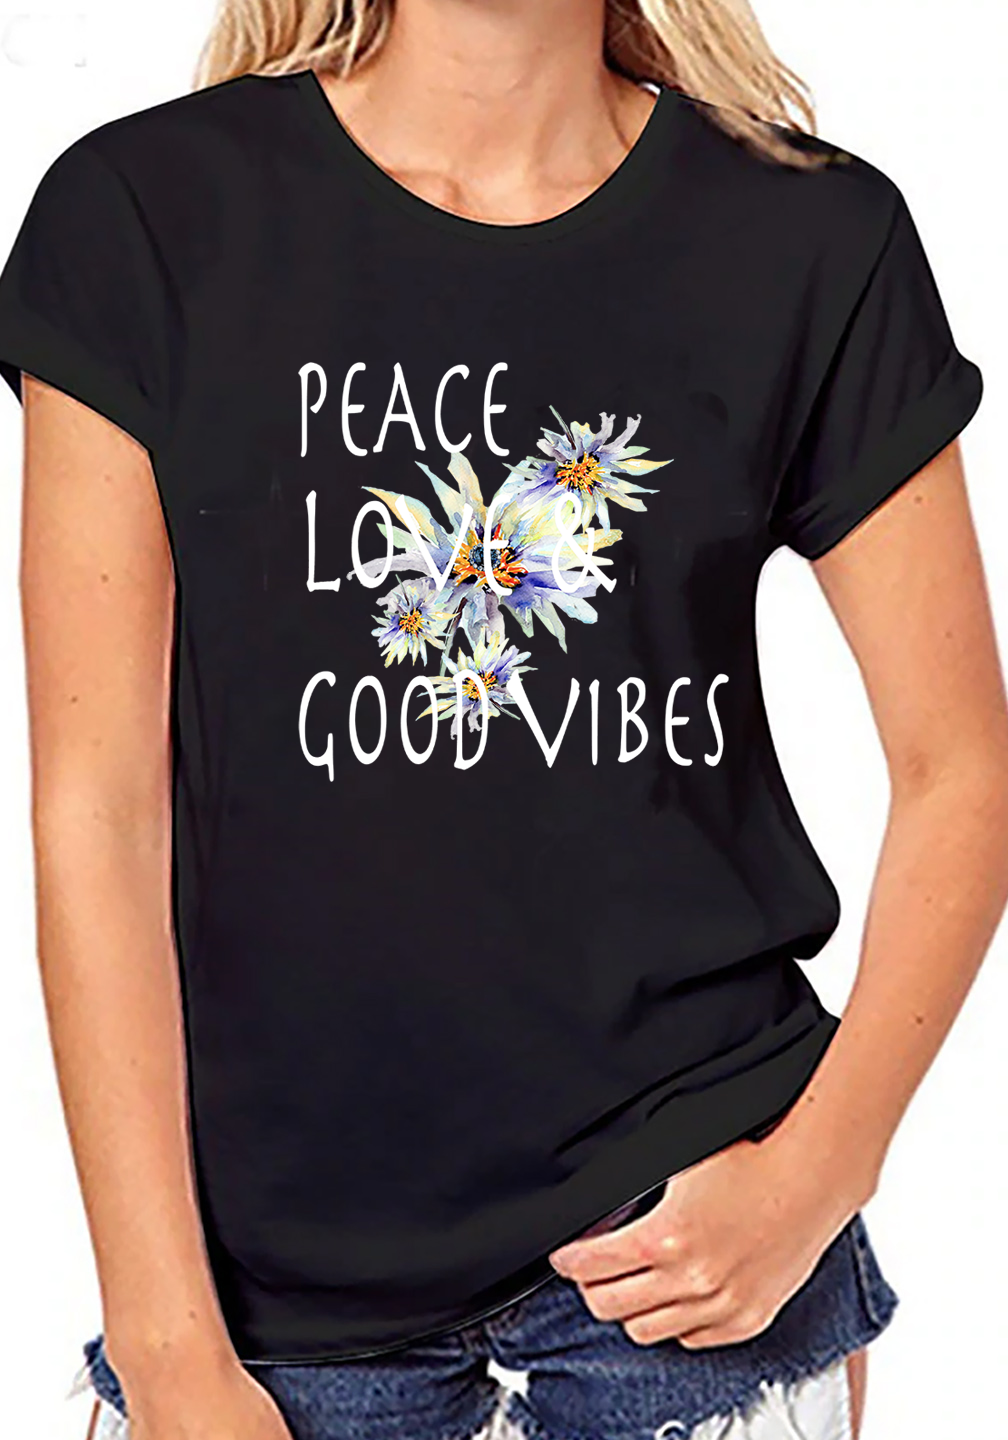 Crew neck black graphic women t shirt Peace Love & good vibes graphic Plus size tees